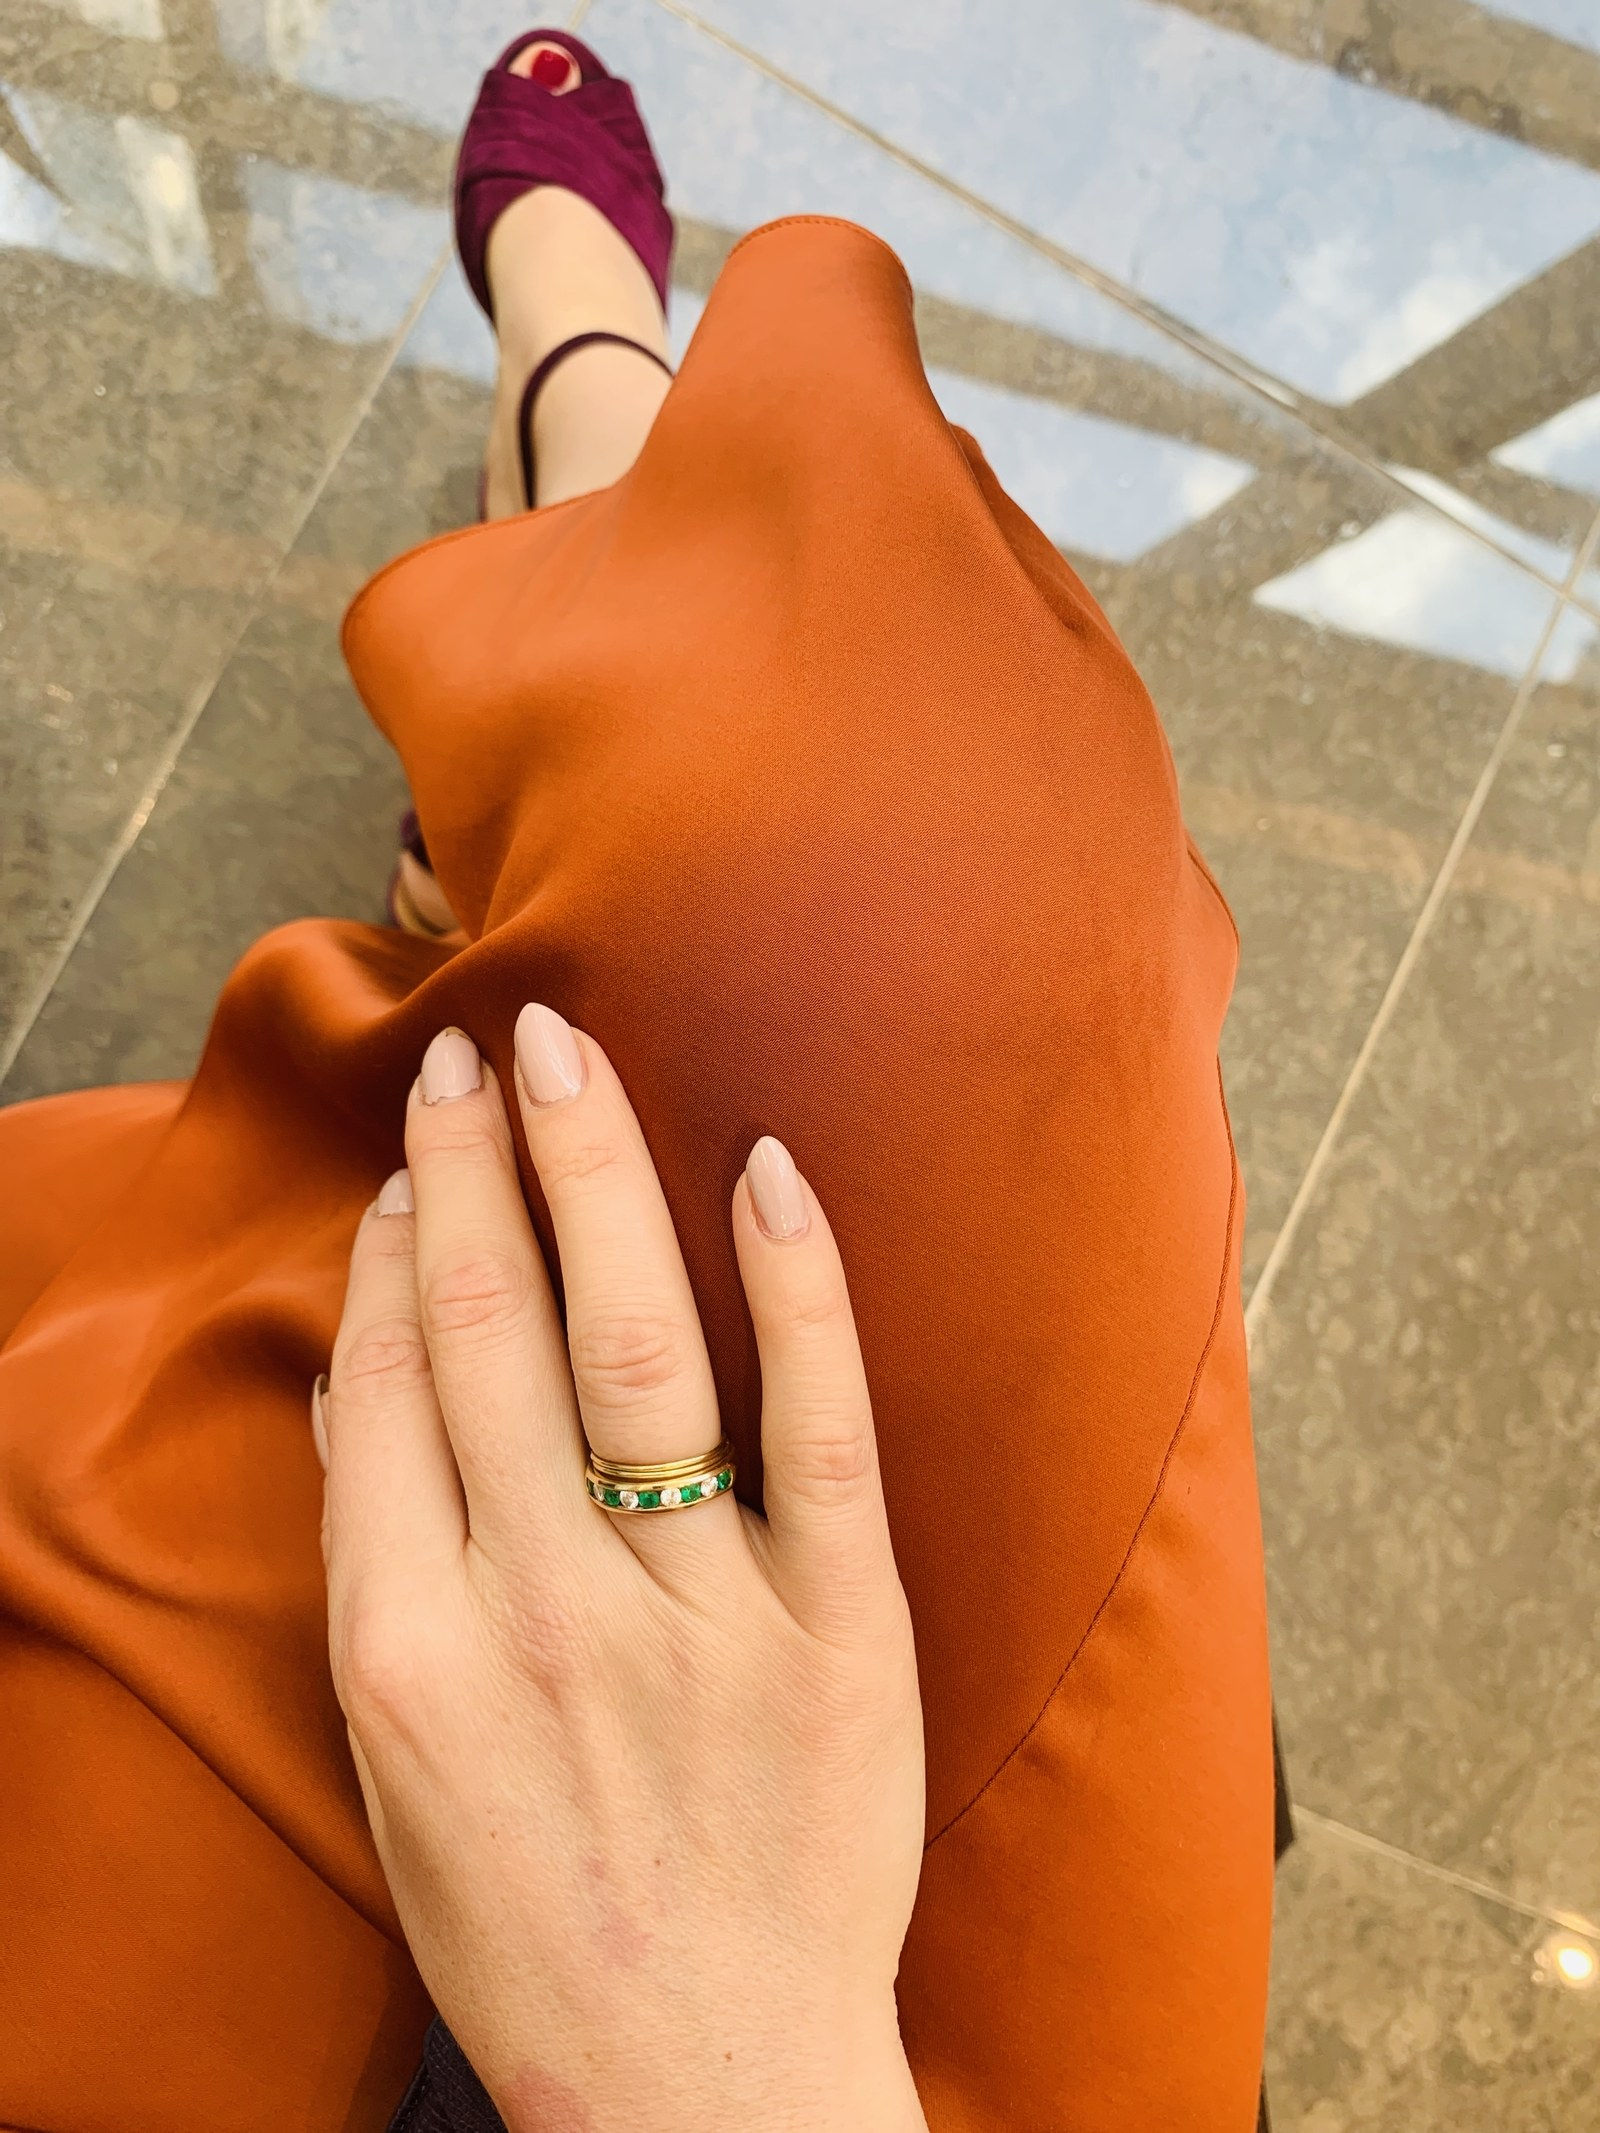 Photo of woman's hand with emerald and diamond ring.